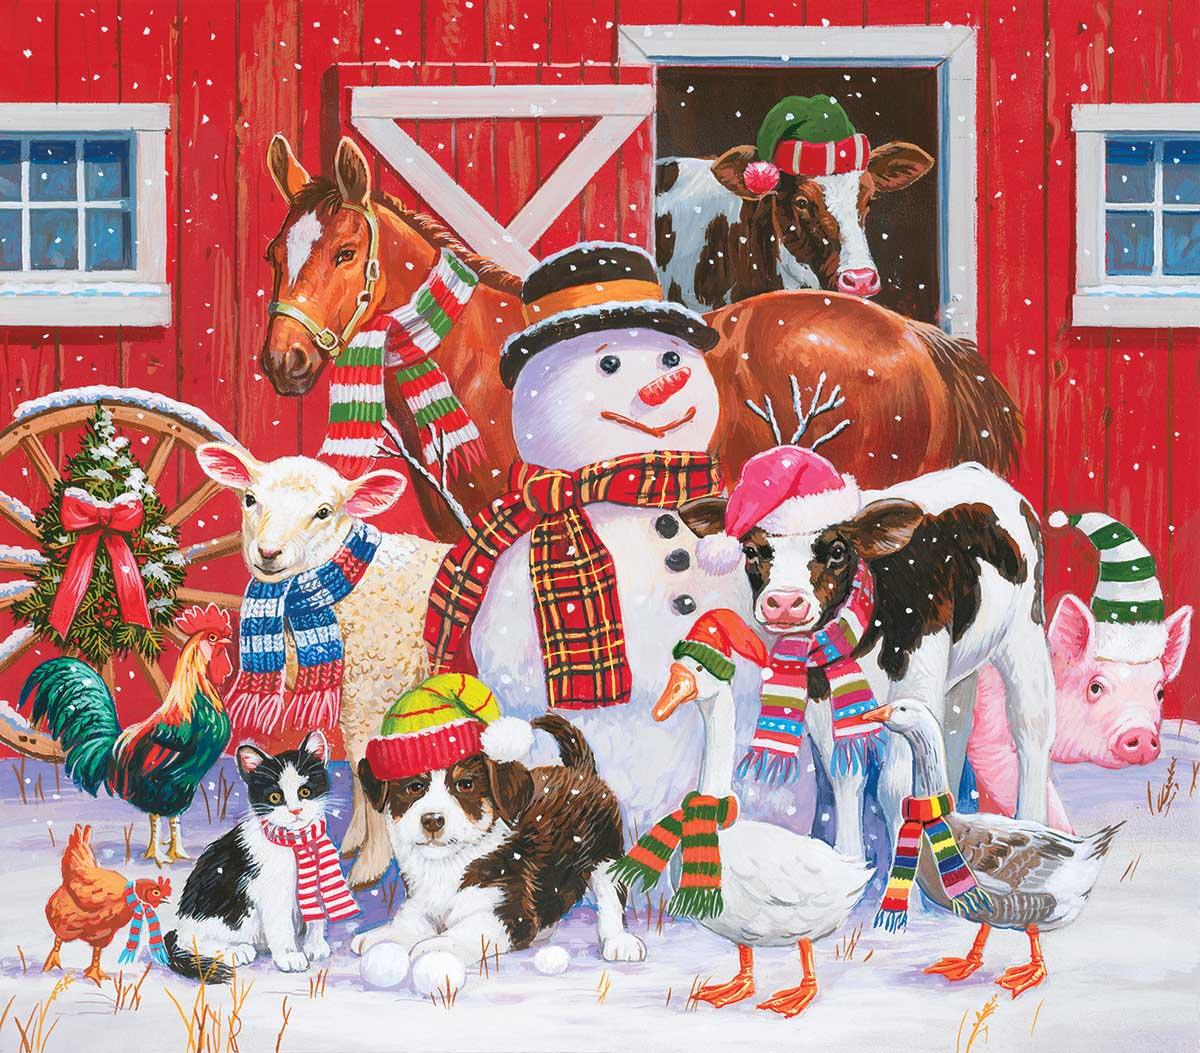 Ready for Winter Farm Jigsaw Puzzle